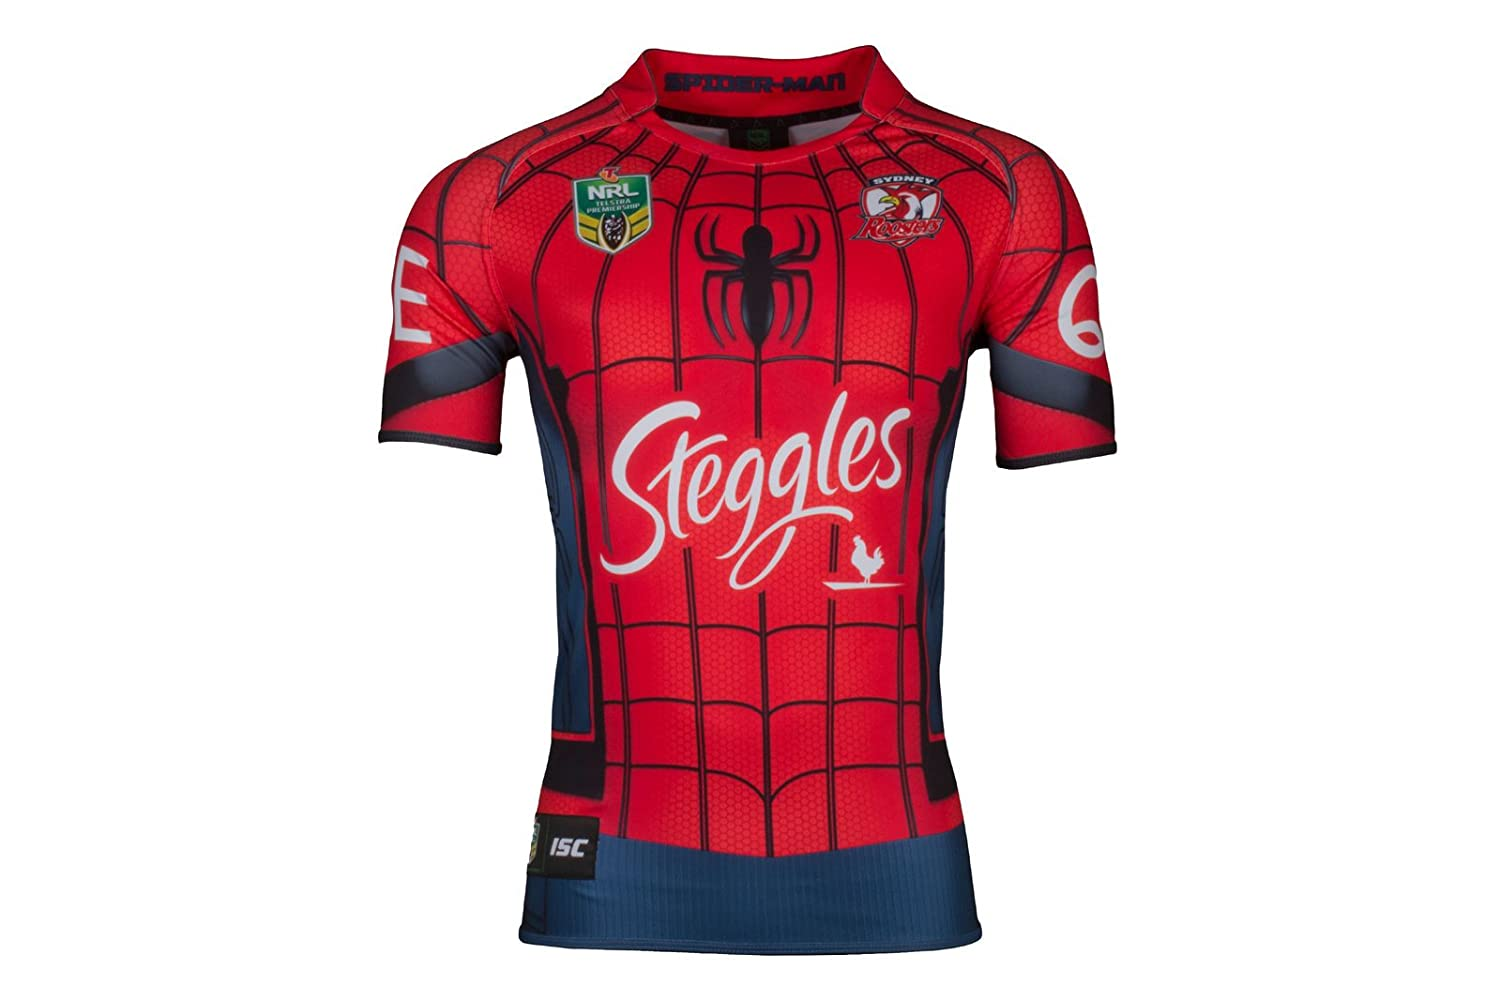 cd016ae577f Sydney Roosters 2017 NRL Spiderman Marvel S/S Ltd Edition Rugby Shirt -  Size 4XL: Amazon.co.uk: Clothing